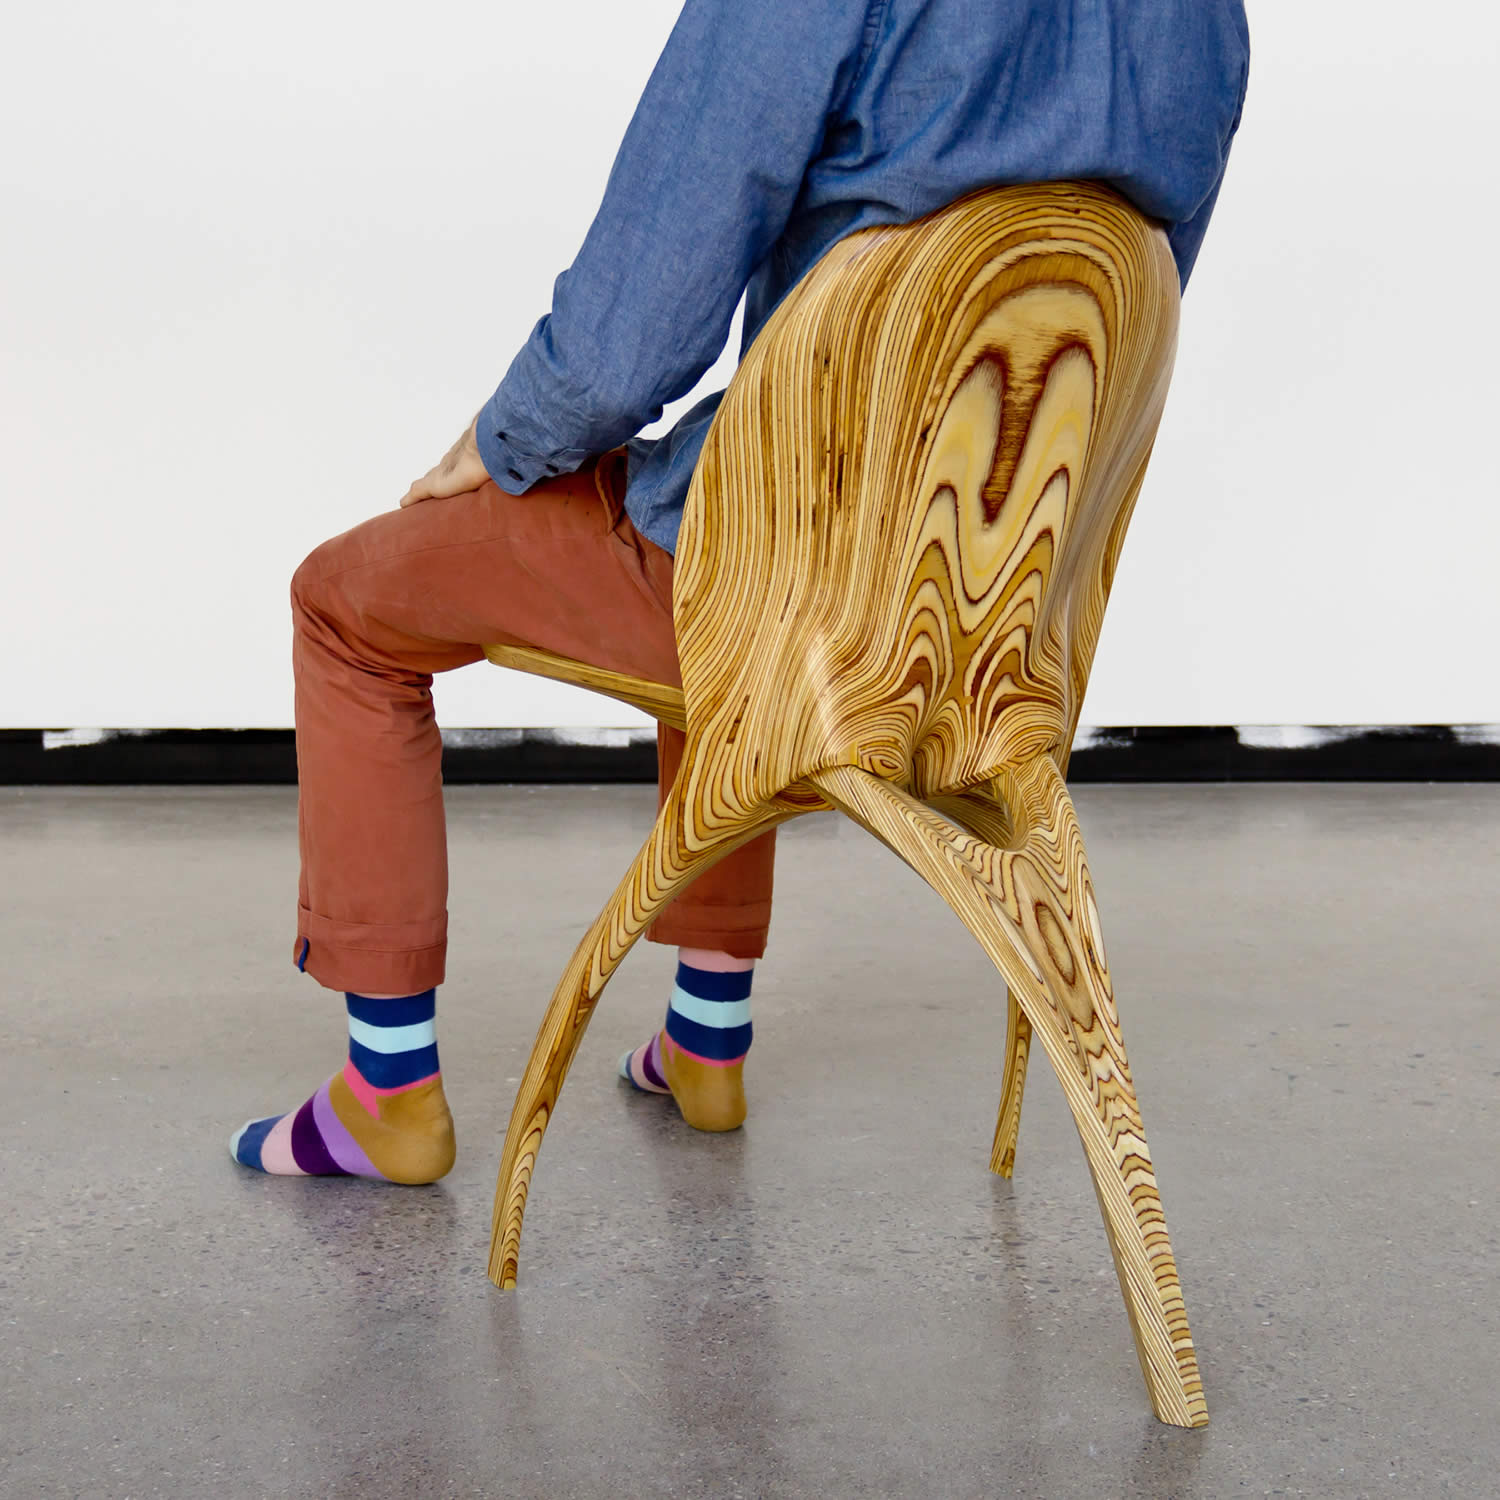 Folding Chair by Ammar Kalo